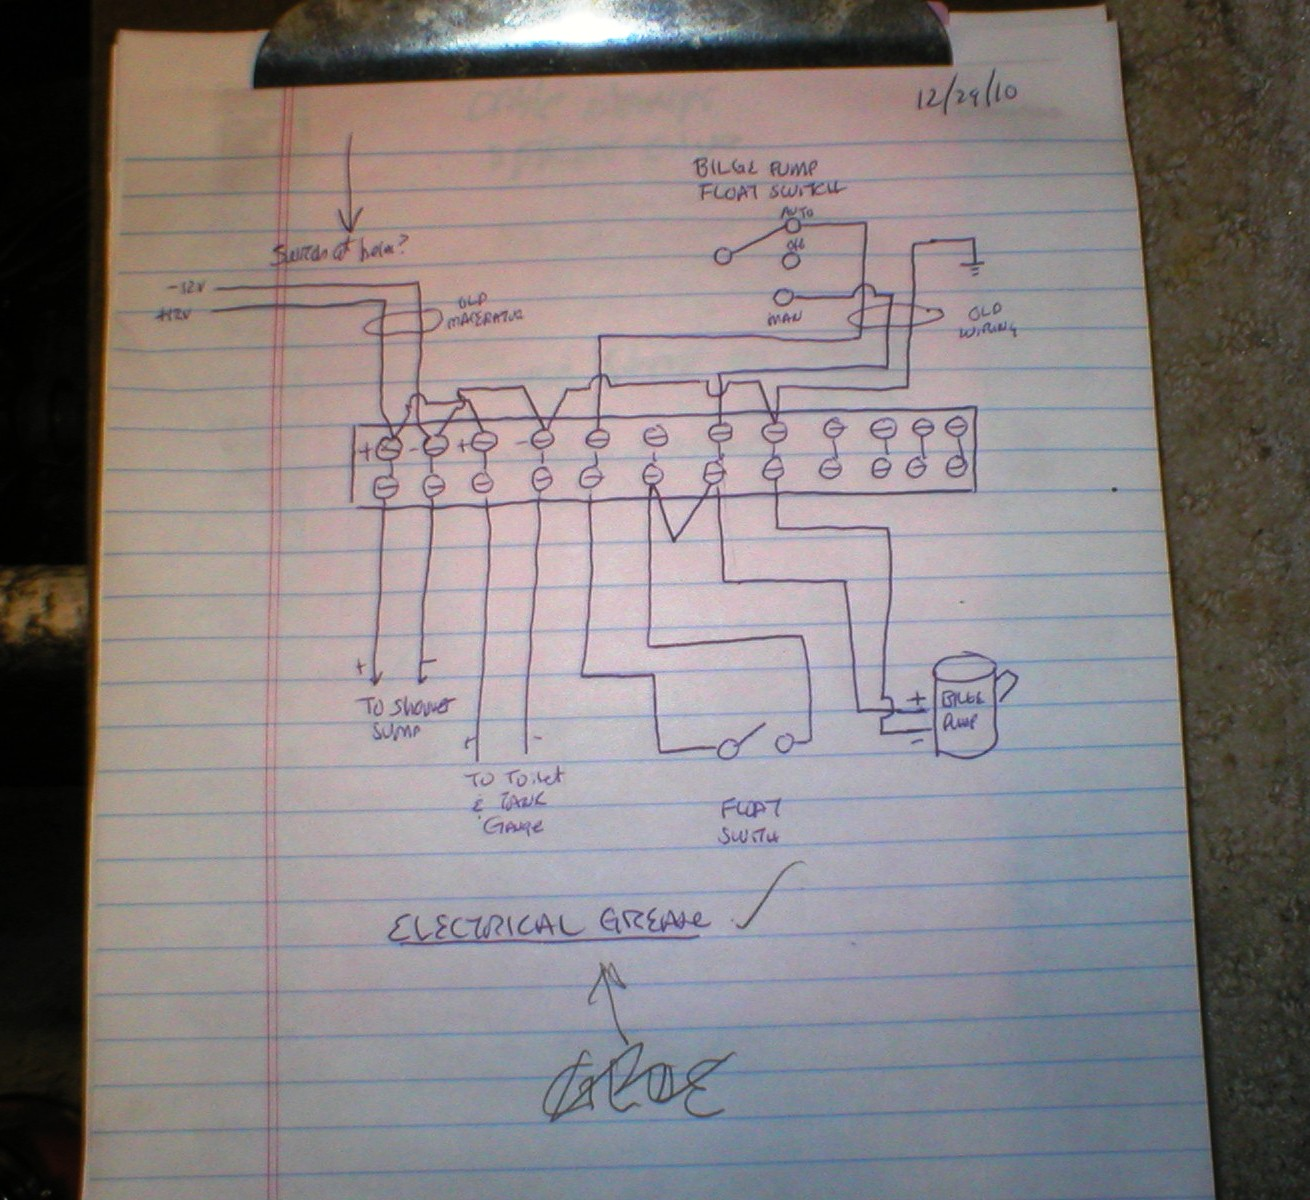 hight resolution of johnson float switch wiring diagram wiring diagram toolbox johnson bilge pump float switch wiring diagram johnson pump wiring diagram